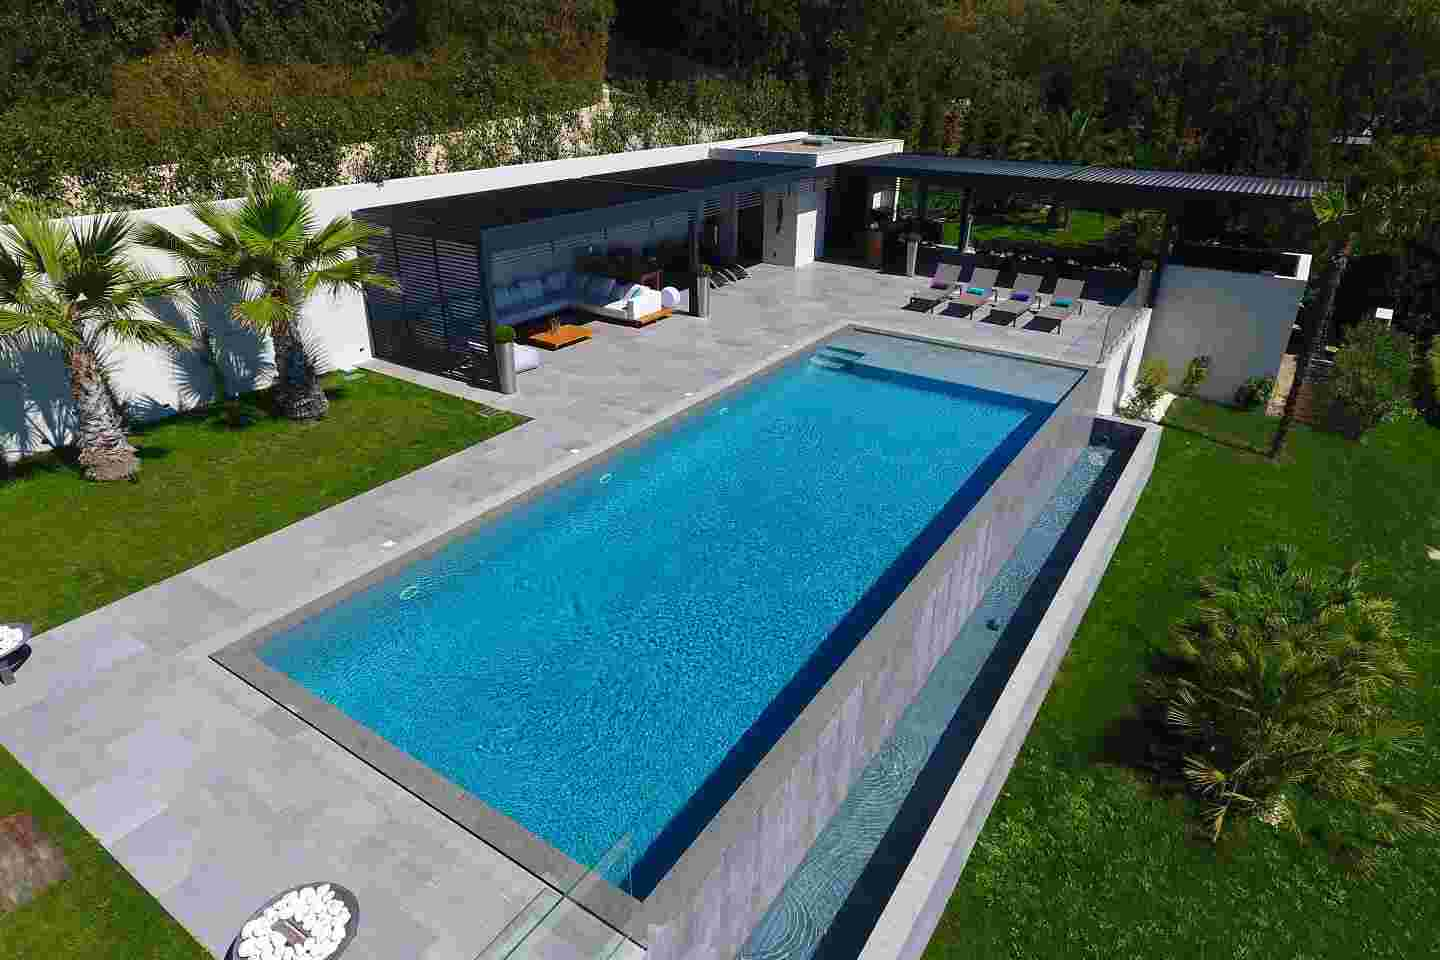 Piscine design et tendance piscines diffazur for Design piscine haubourdin